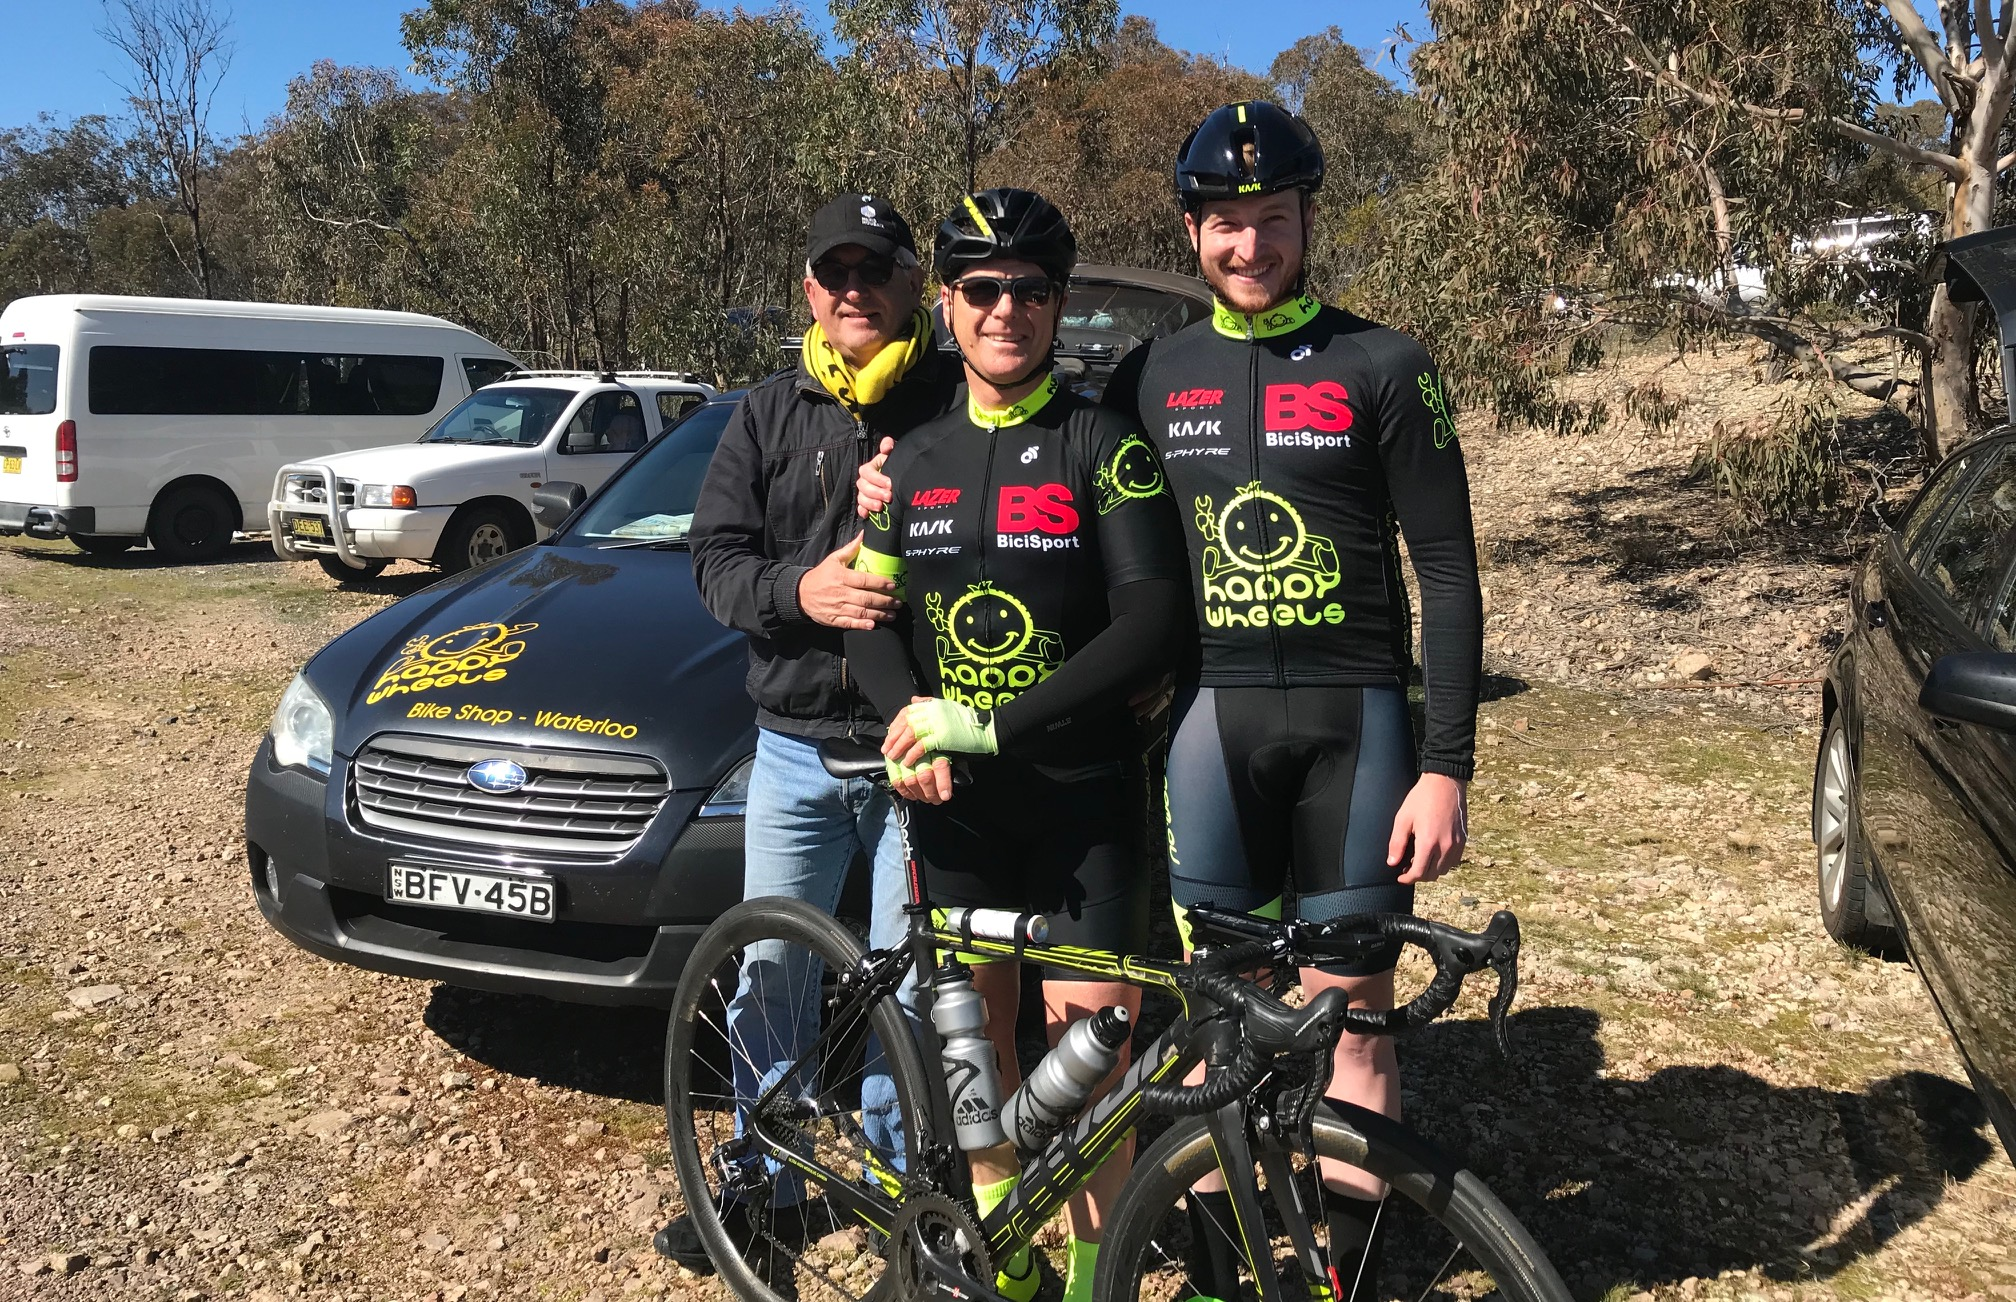 Cootamundra 115k Handicap @ 17 August - before the start with Mike O'Reilly, Peter Budd & Conor Tarlington